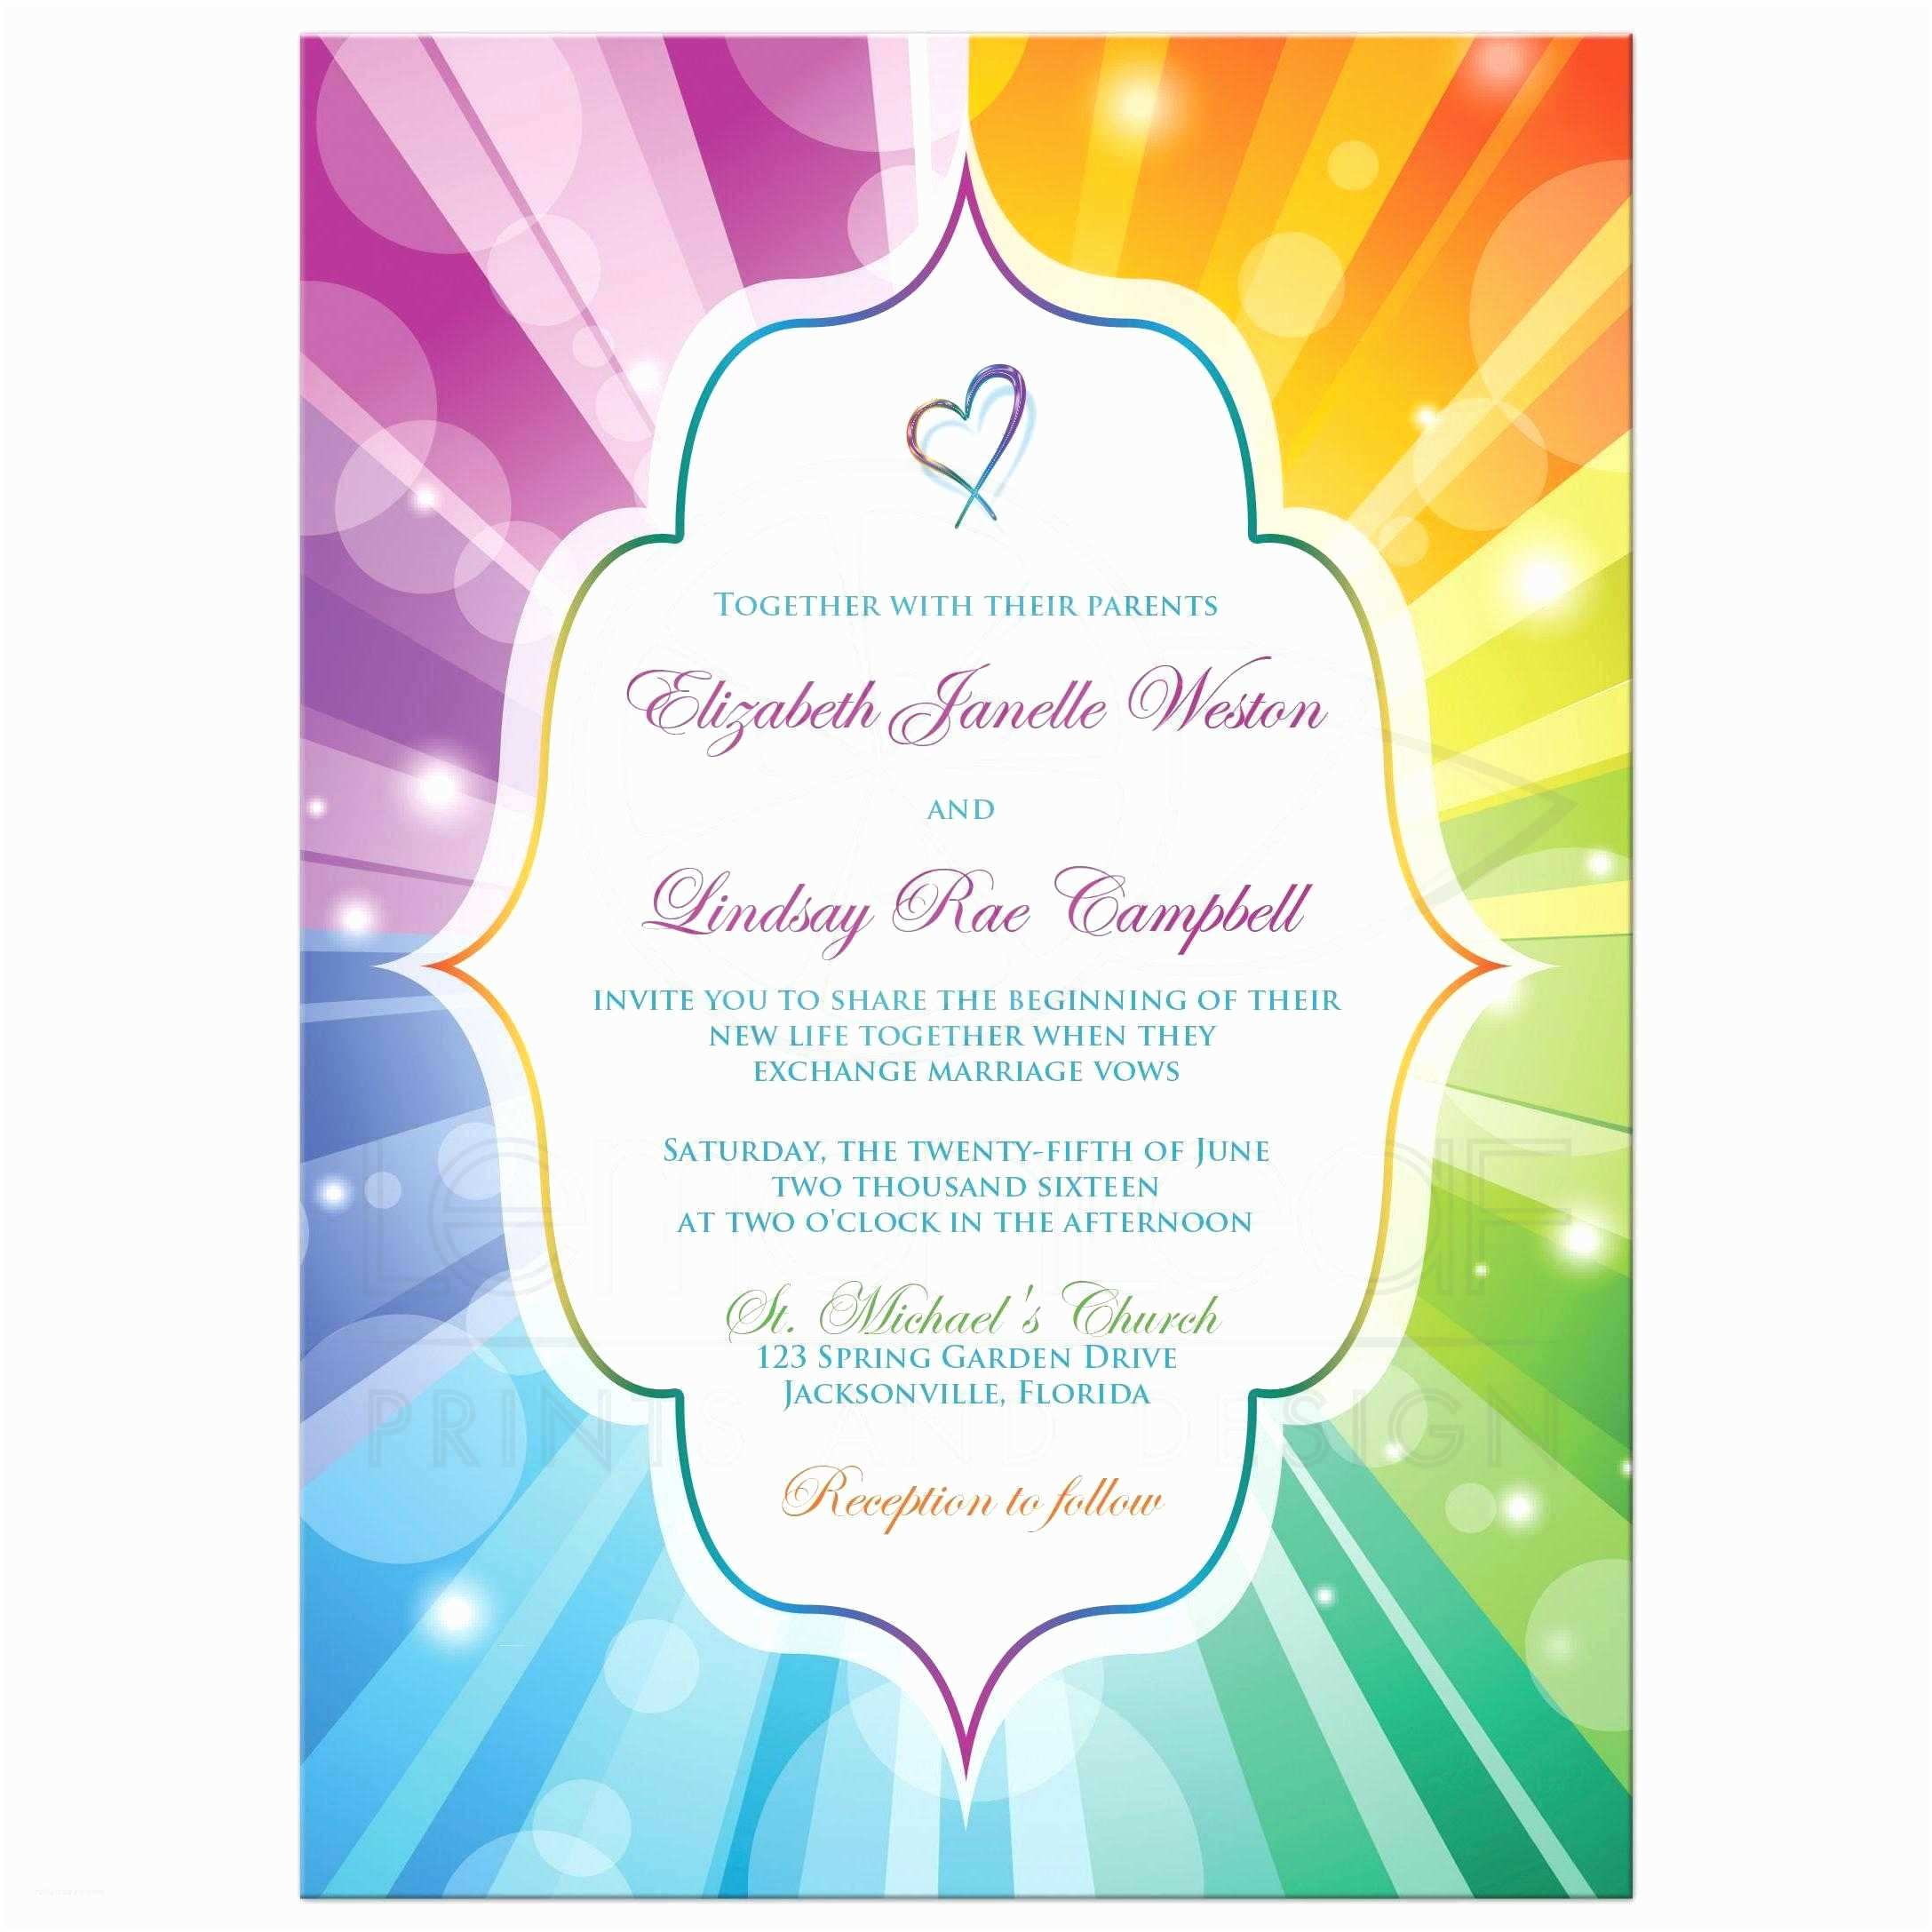 Rainbow Wedding Invitations Wedding Invitation Rainbow Colors Striped Sunbursts